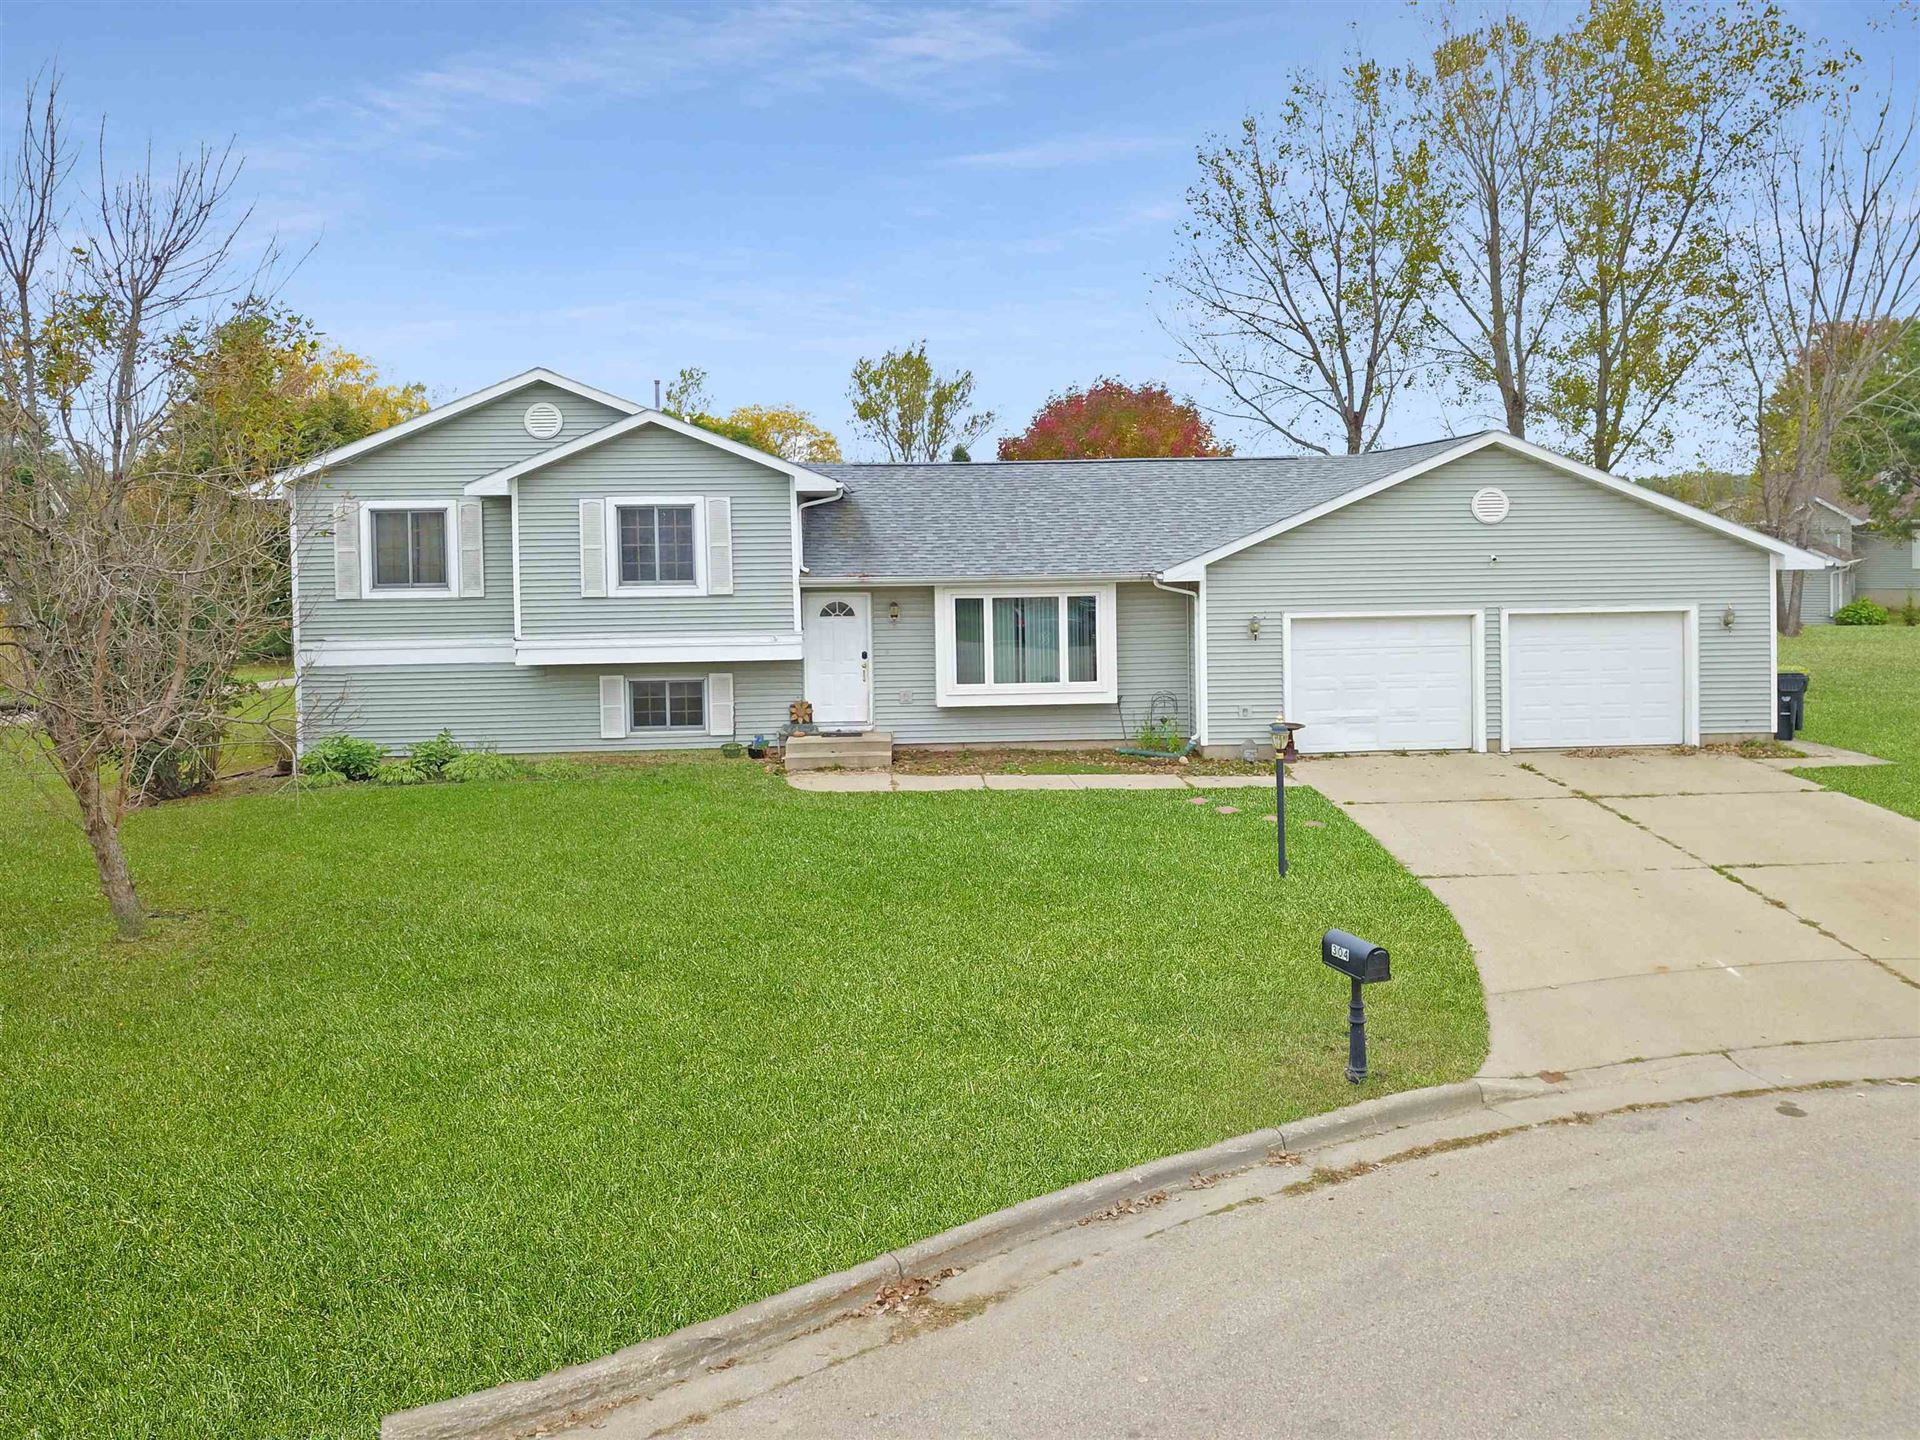 304 Hyland Ave, Tomah, WI 54660 - #: 1921356